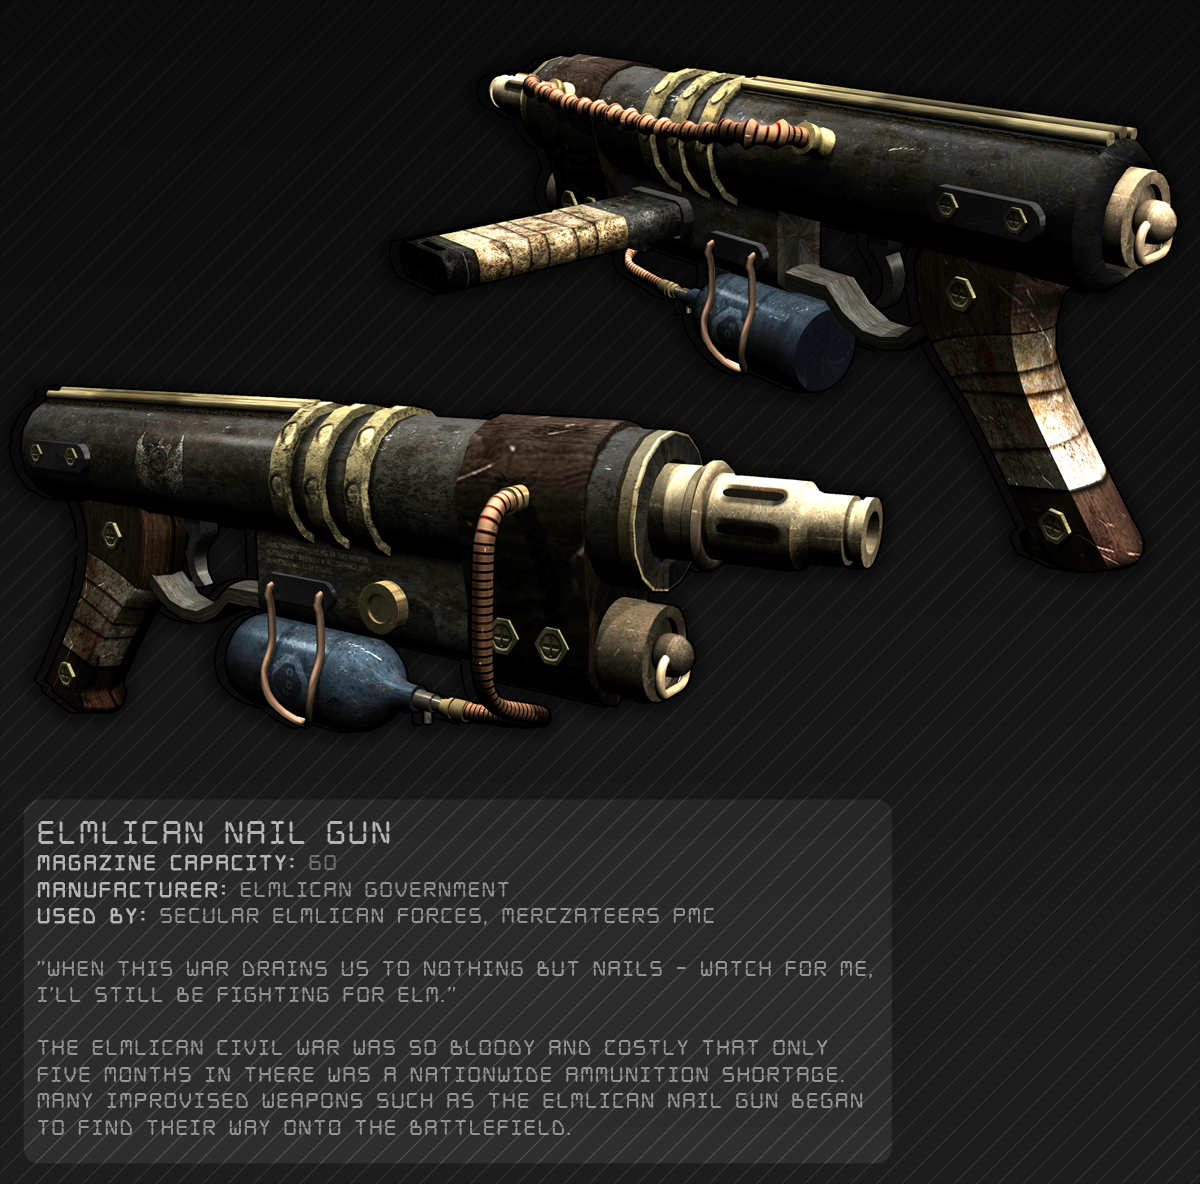 Elmlican nail gun by lenskiy32 on deviantart elmlican nail gun by lenskiy32 elmlican nail gun by lenskiy32 prinsesfo Image collections